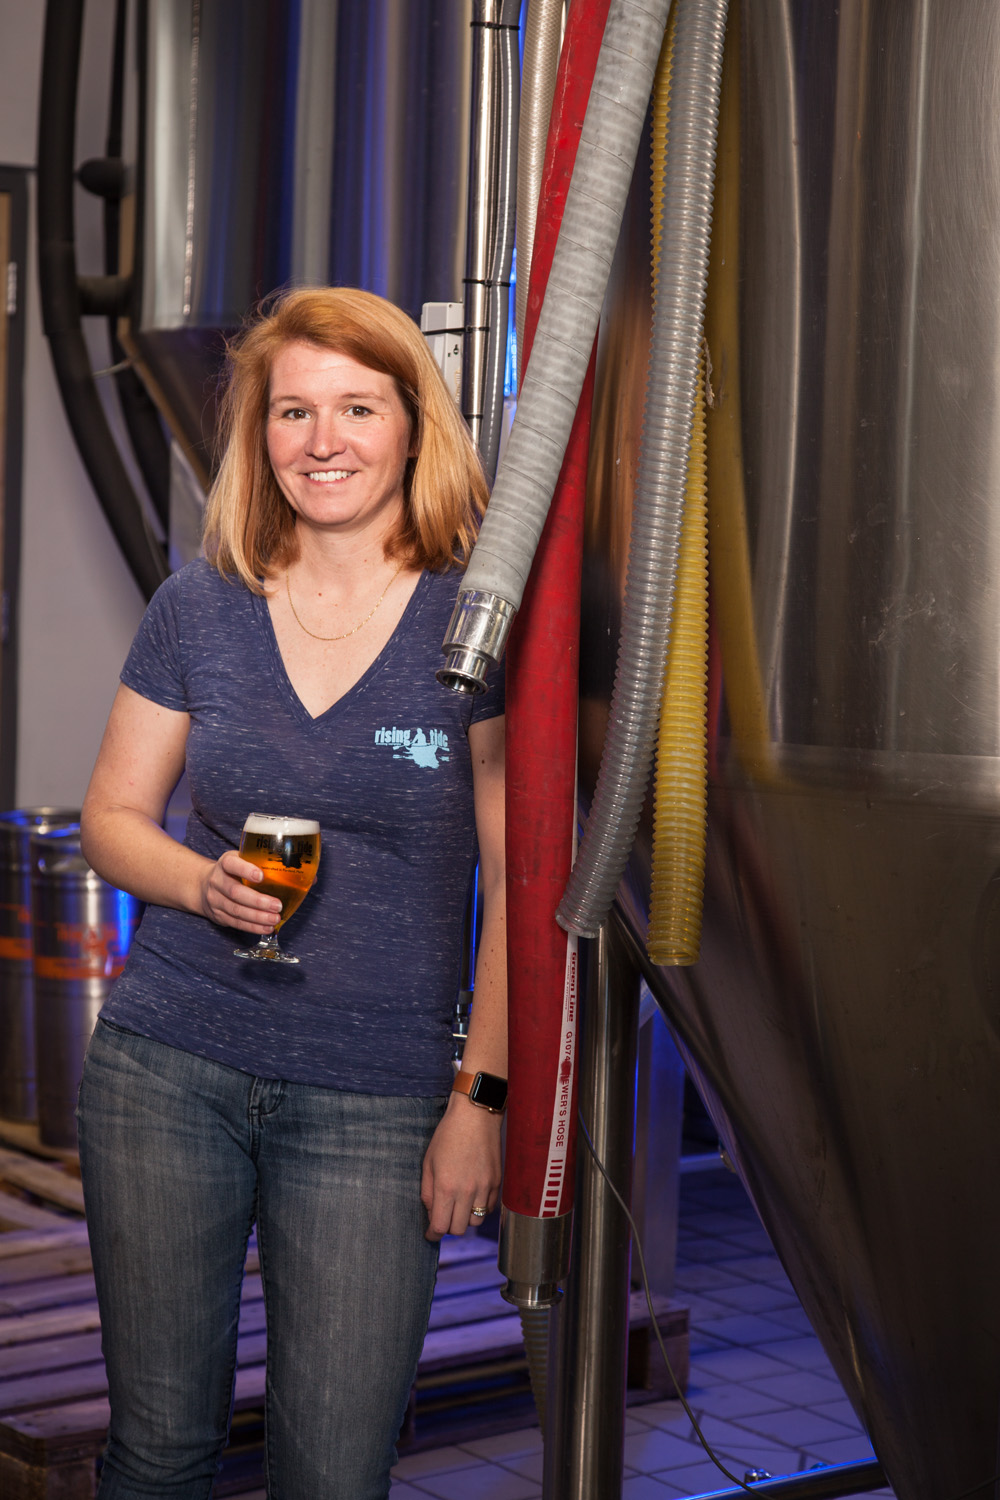 Heather Sanborn, Co-owner of Rising Tide Brewing Co. Portland, ME Established 2010